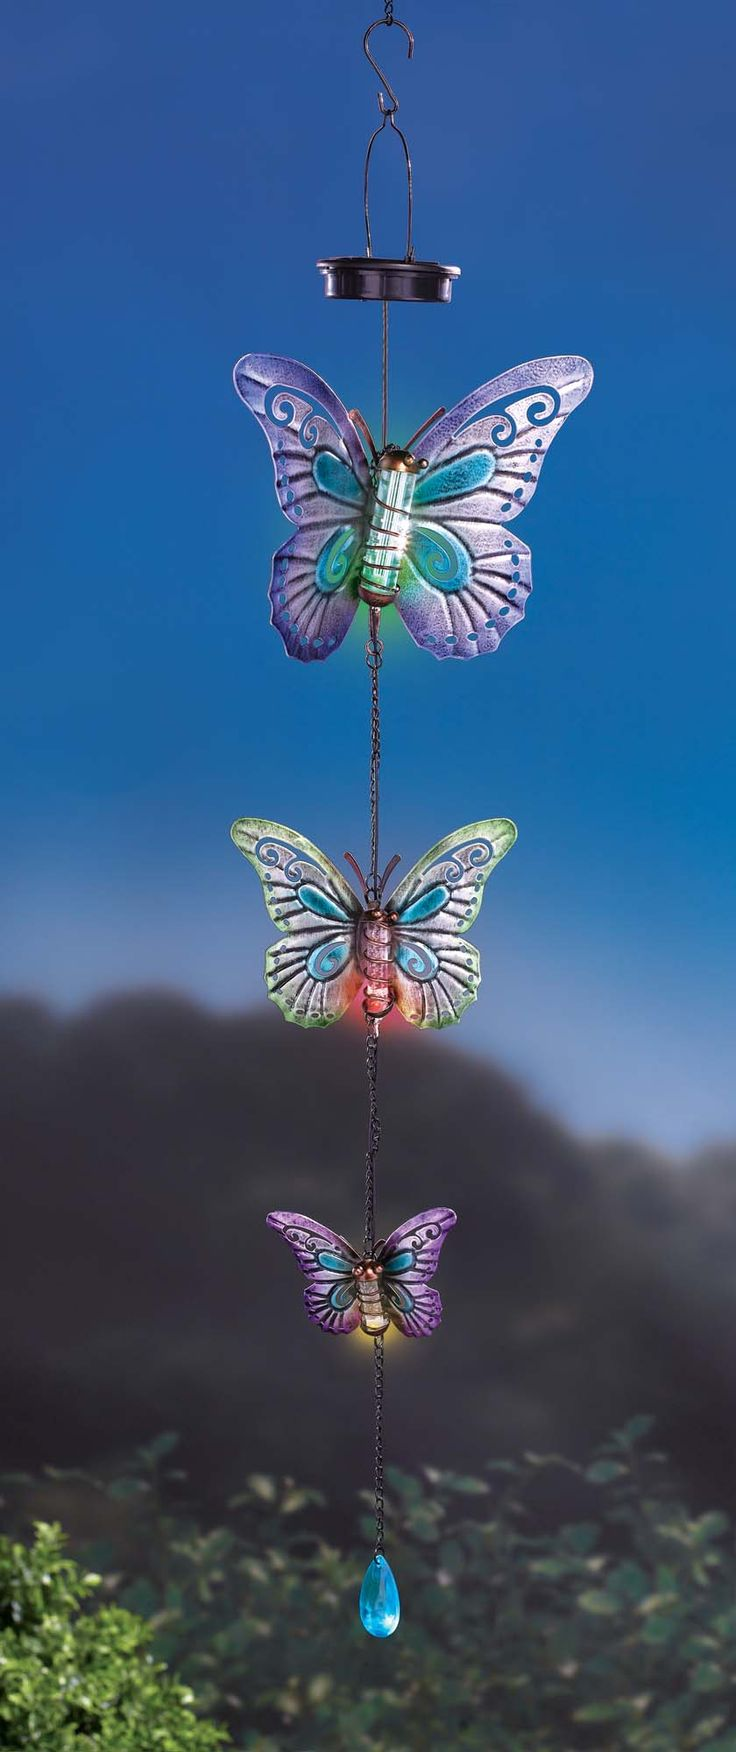 GR Solar Triple-Butterfly Hanging Decor has a LED light in the tube of each butterfly body that lights up when it gets dark, powered by solar panel that holds rechargeable battery #GR #GrasslandsRoad #Metal #Glass #Acrylic #Blue #Purple #Green #Red #Orange #Pink #Black #Hook #Hang #Set #Light #Rechargeable #Battery #Cute #Garden #Decor #GiftIdea #Patio #Deck #Gazebo #Decoration #zulily #zulilyfinds